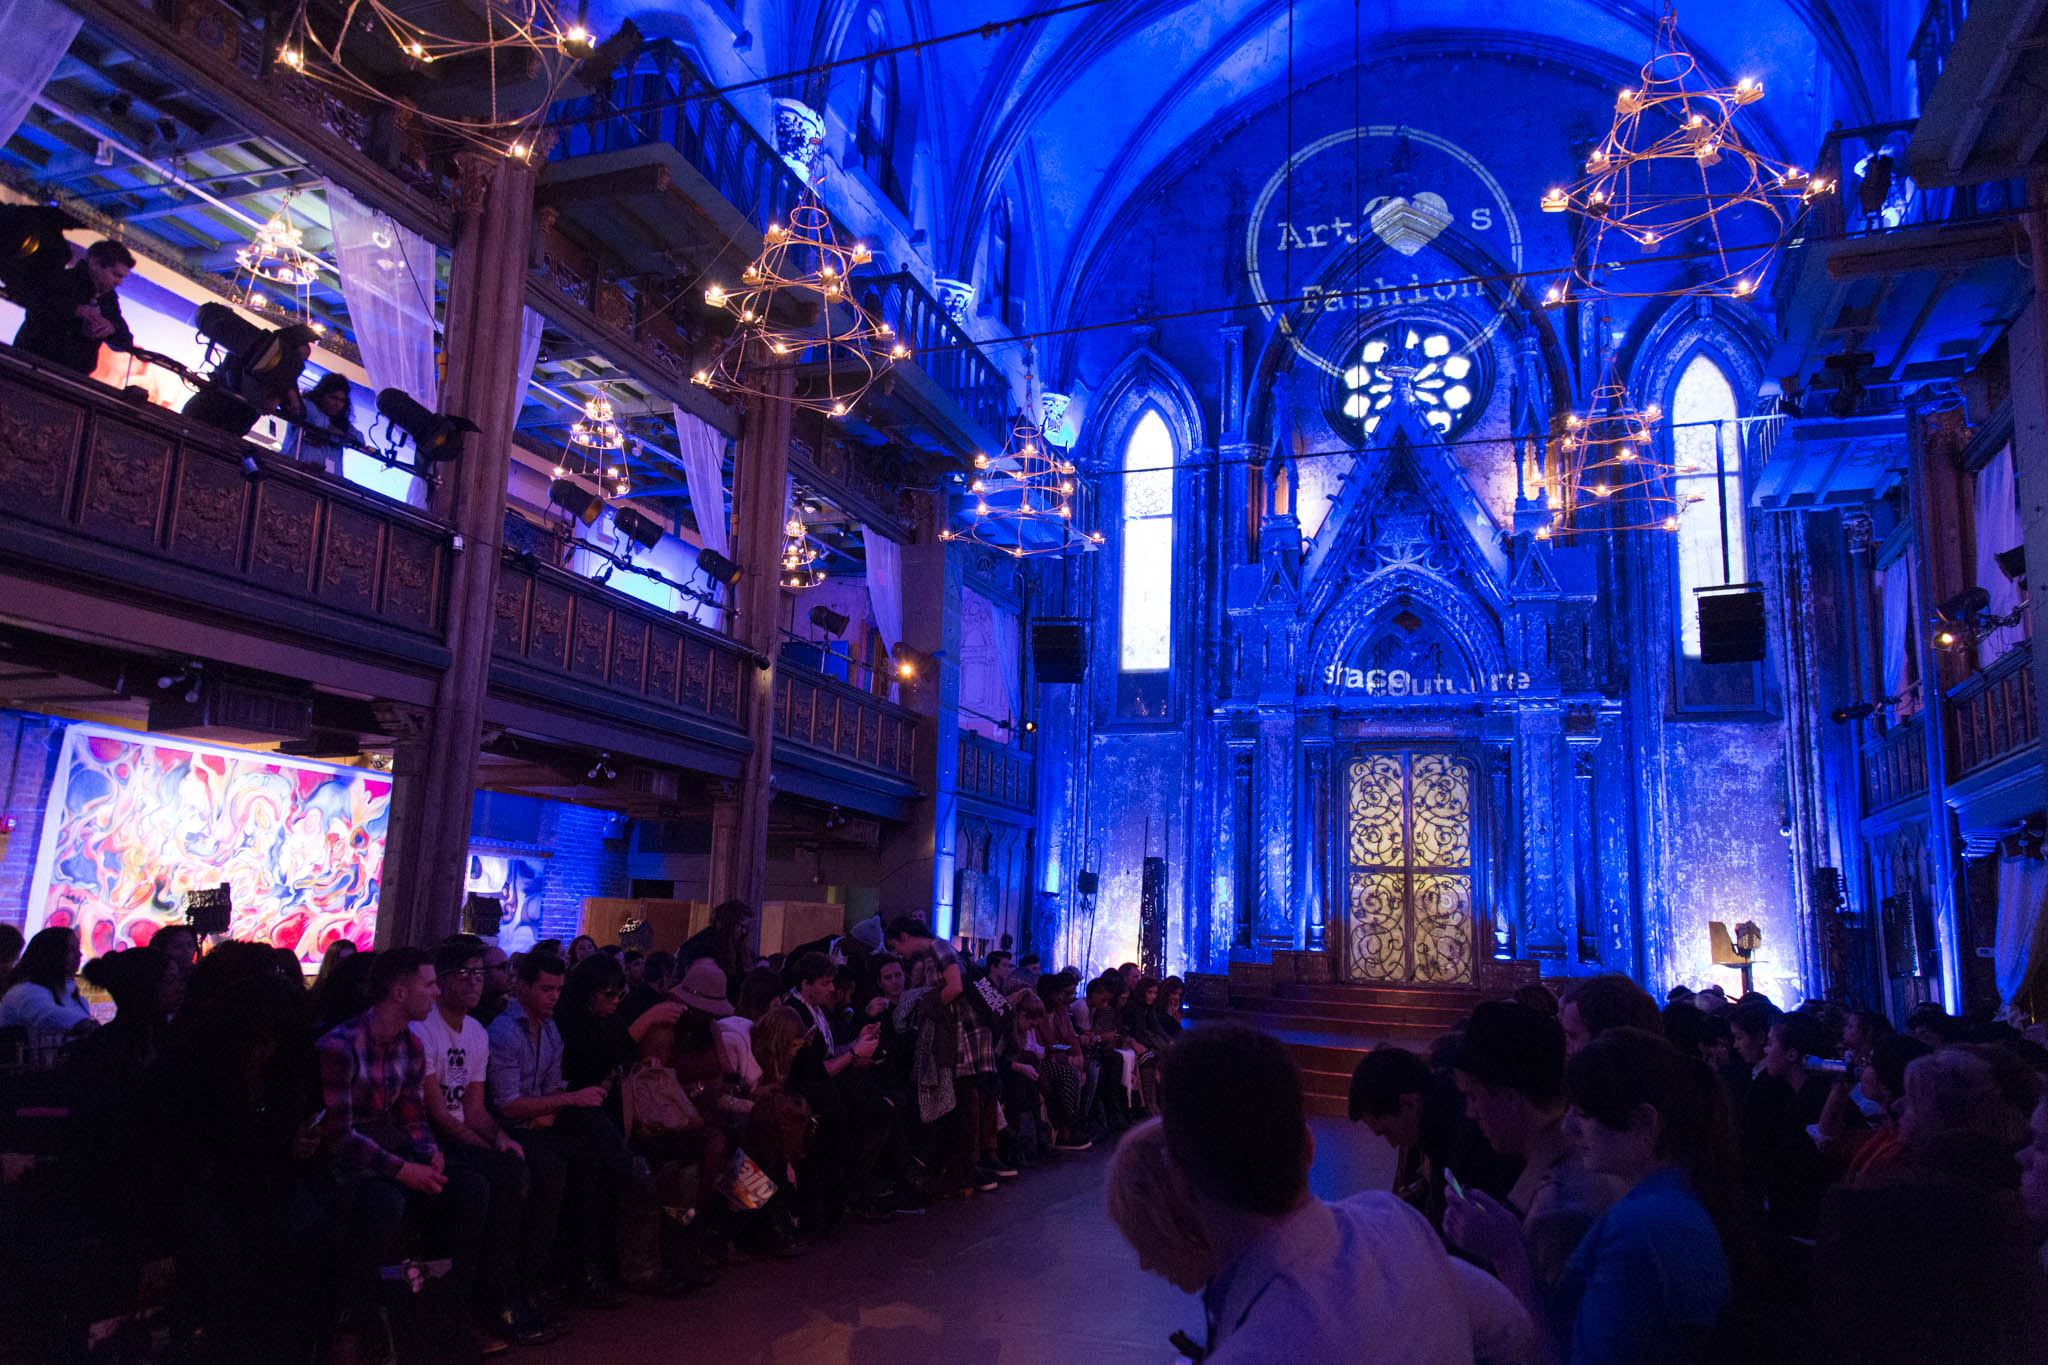 The Angel Orensanz Foundation Event Space located on the lower east side.